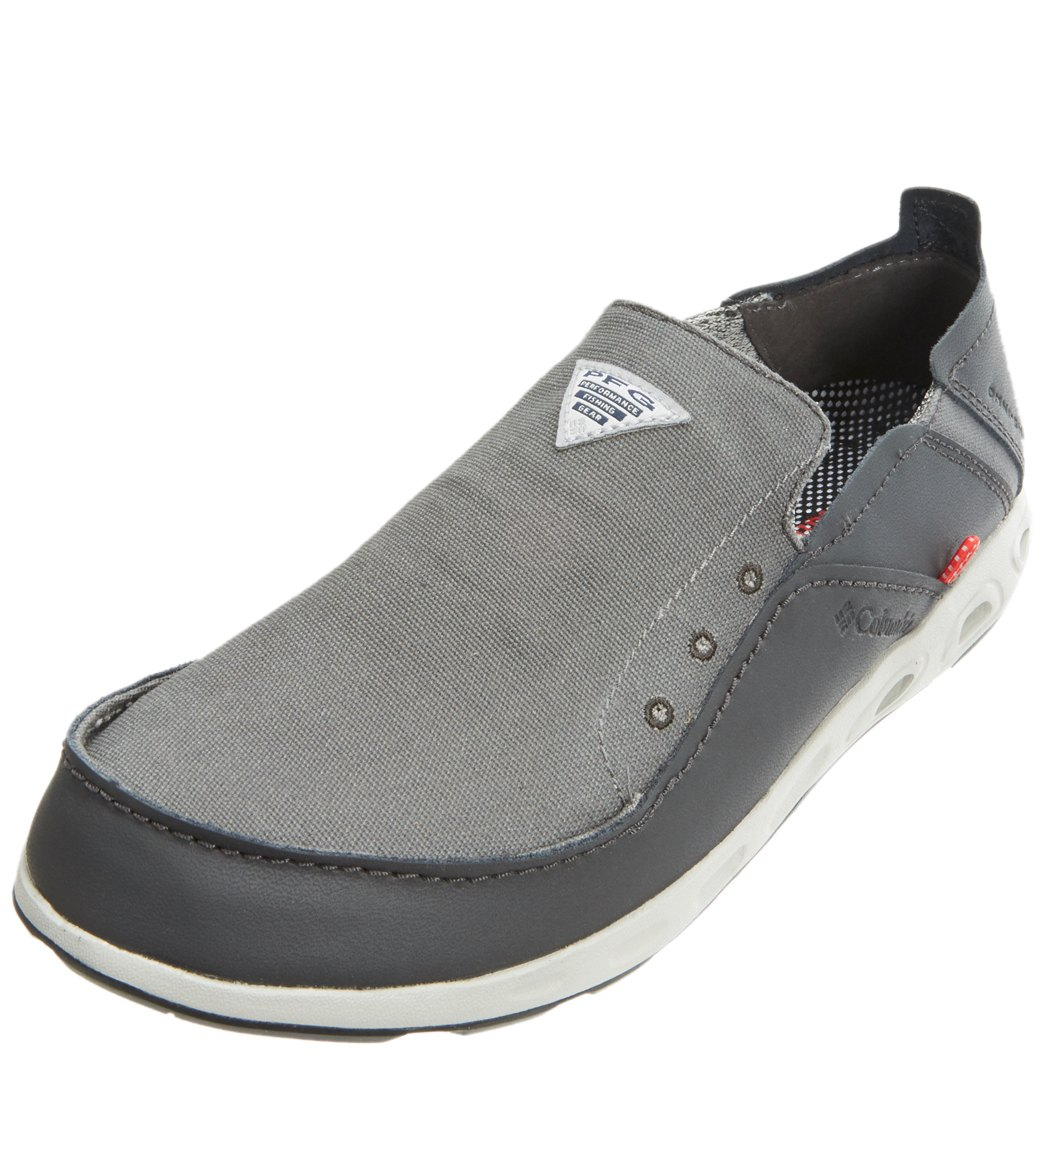 e6e2619a1aa Columbia Men s Bahama Vent PFG Shoe at SwimOutlet.com - Free Shipping